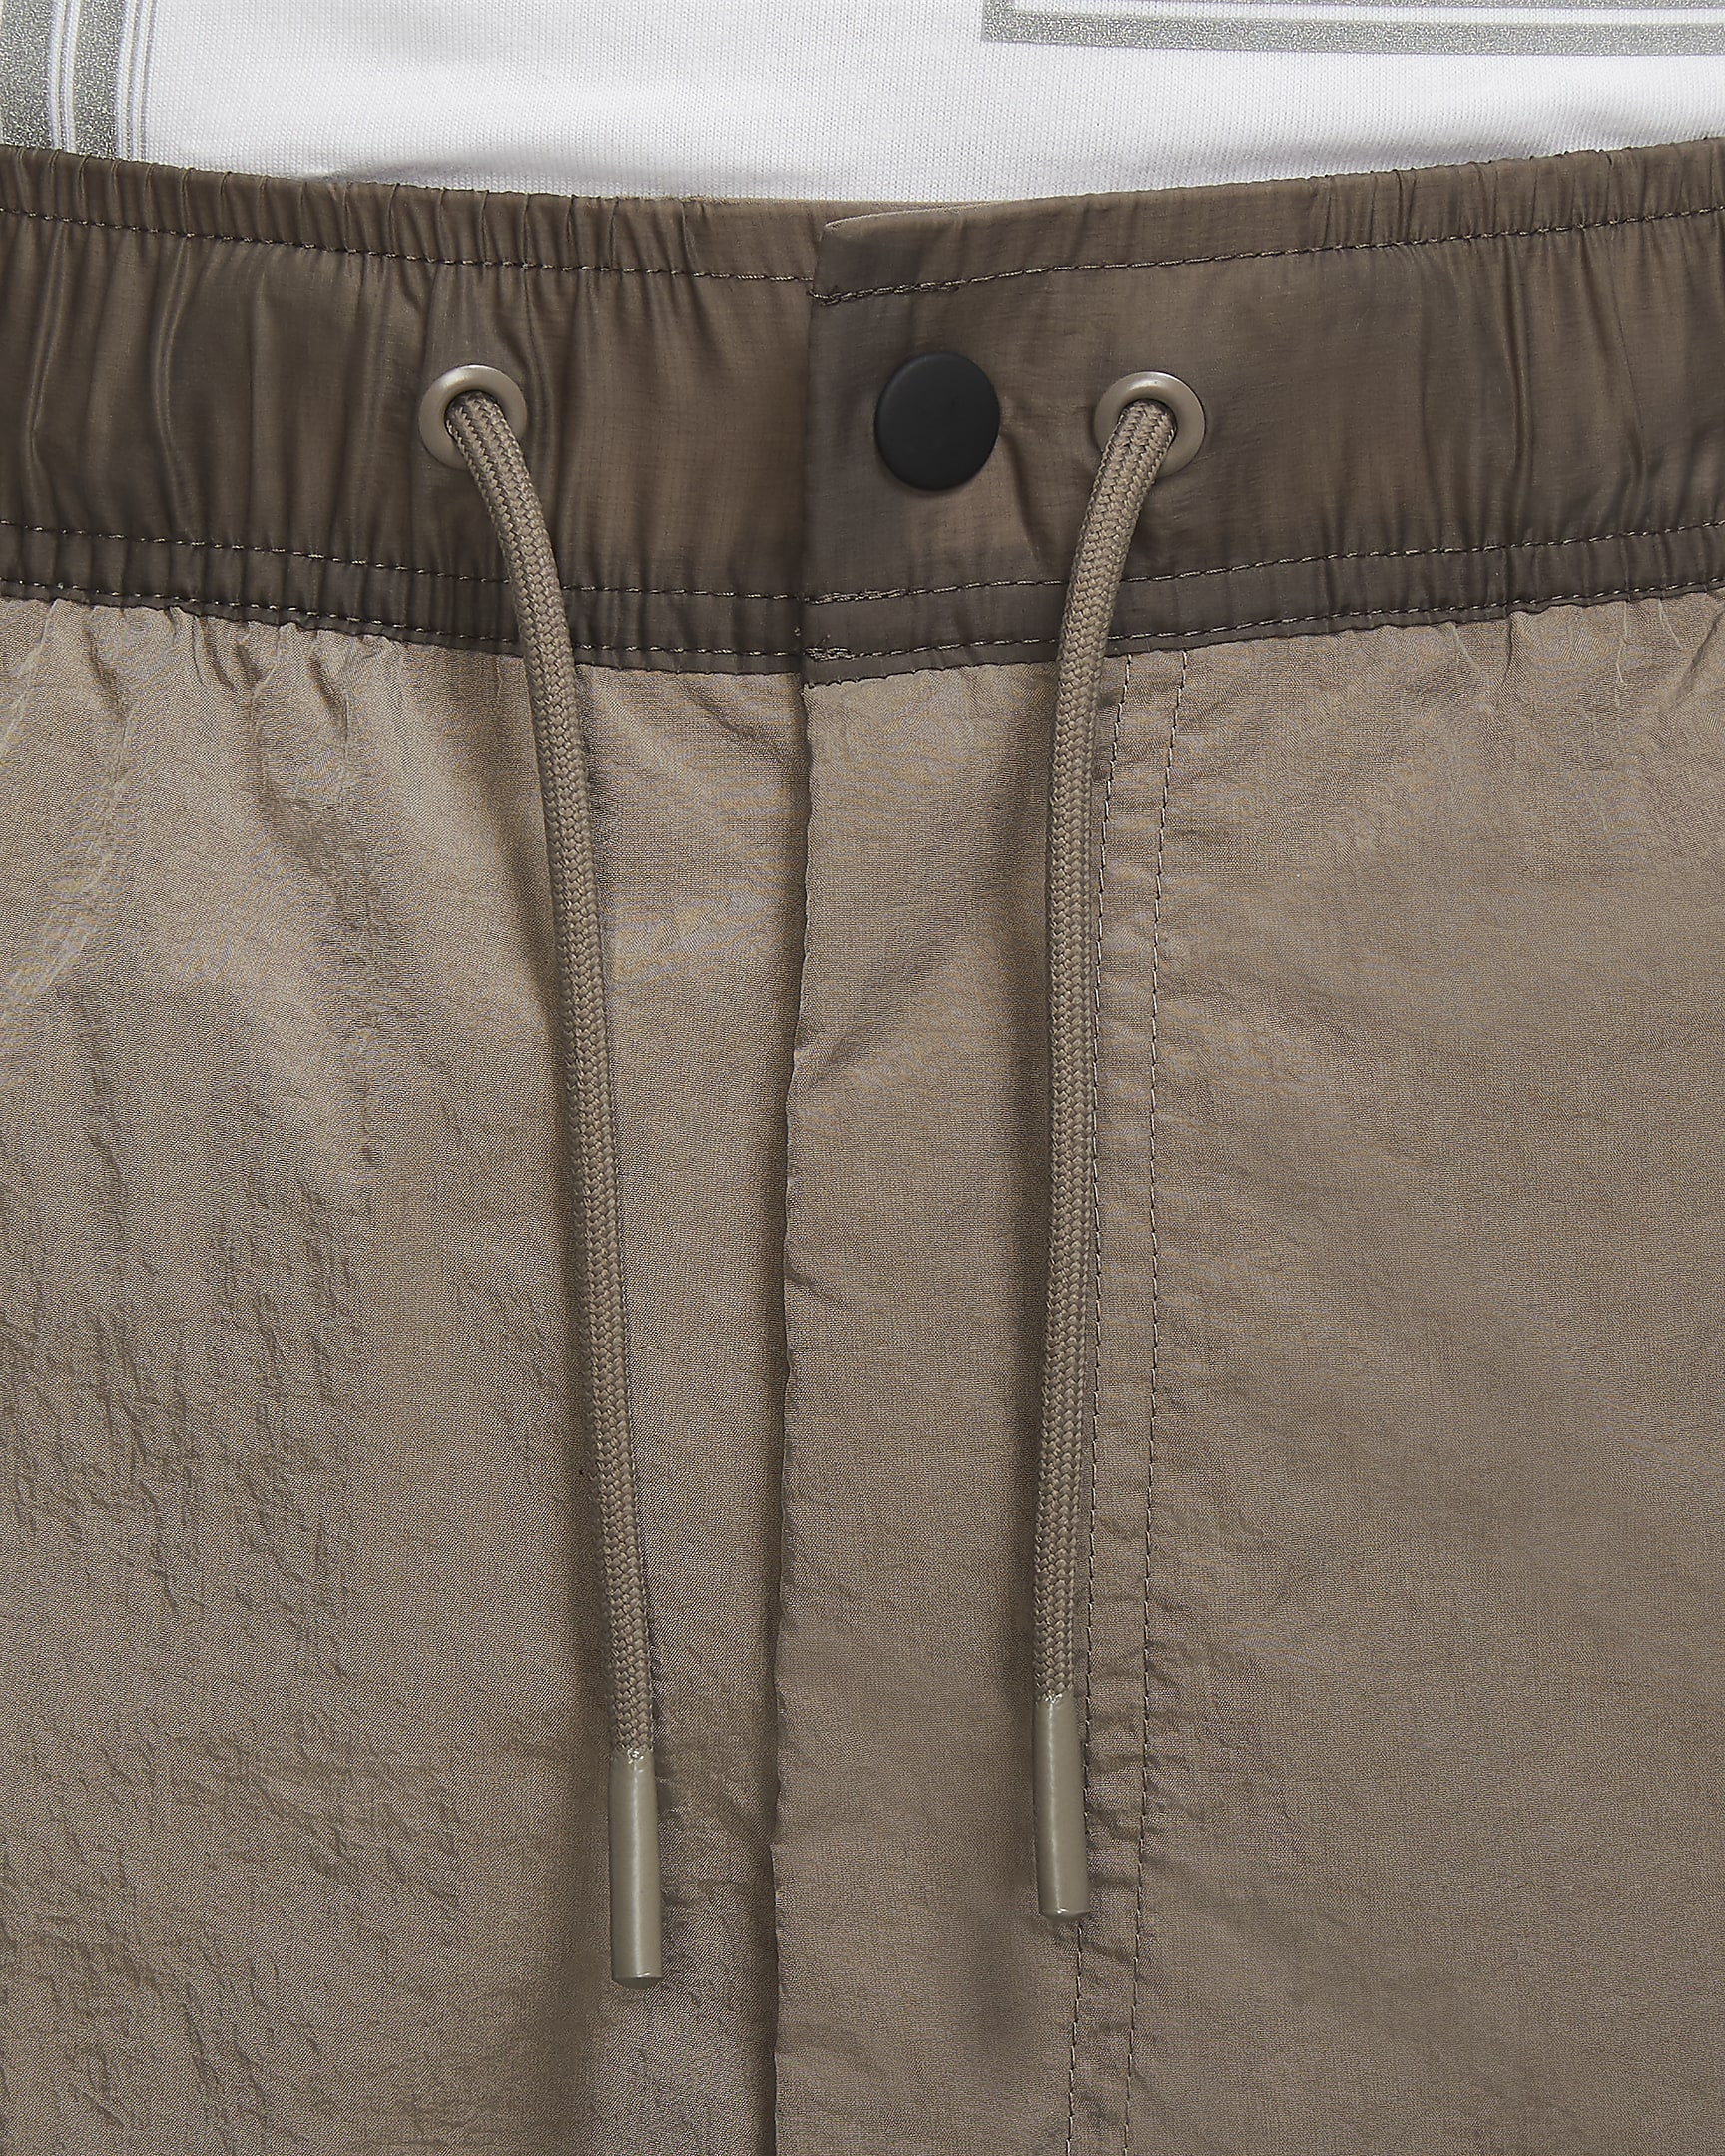 jordan-23-engineered-mens-cargo-pants-HtXMBm-7